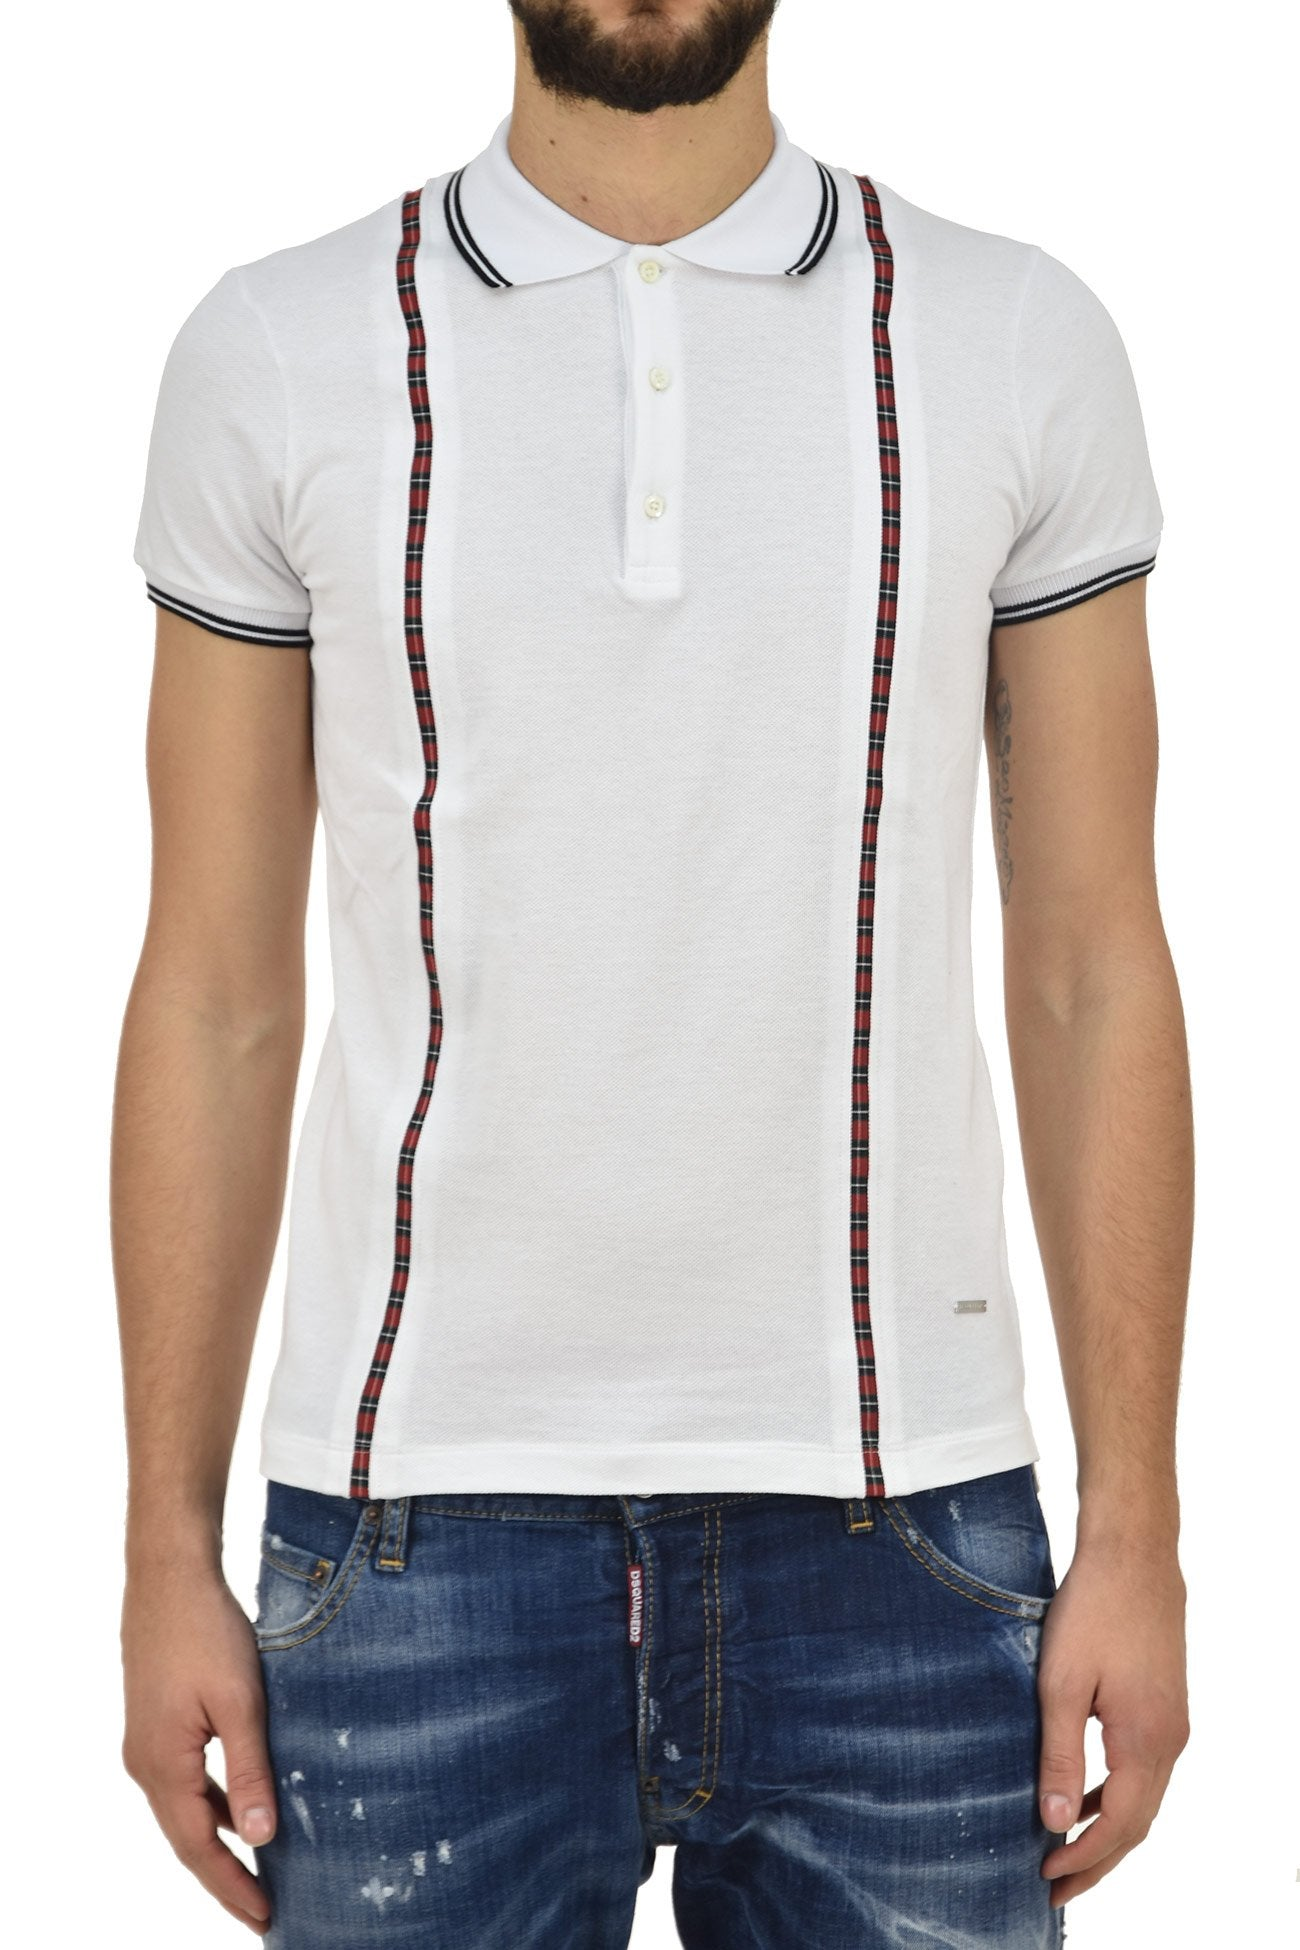 Dsquared2 T-shirt Polo Bianca Uomo Mod.S71GD0463S23033100